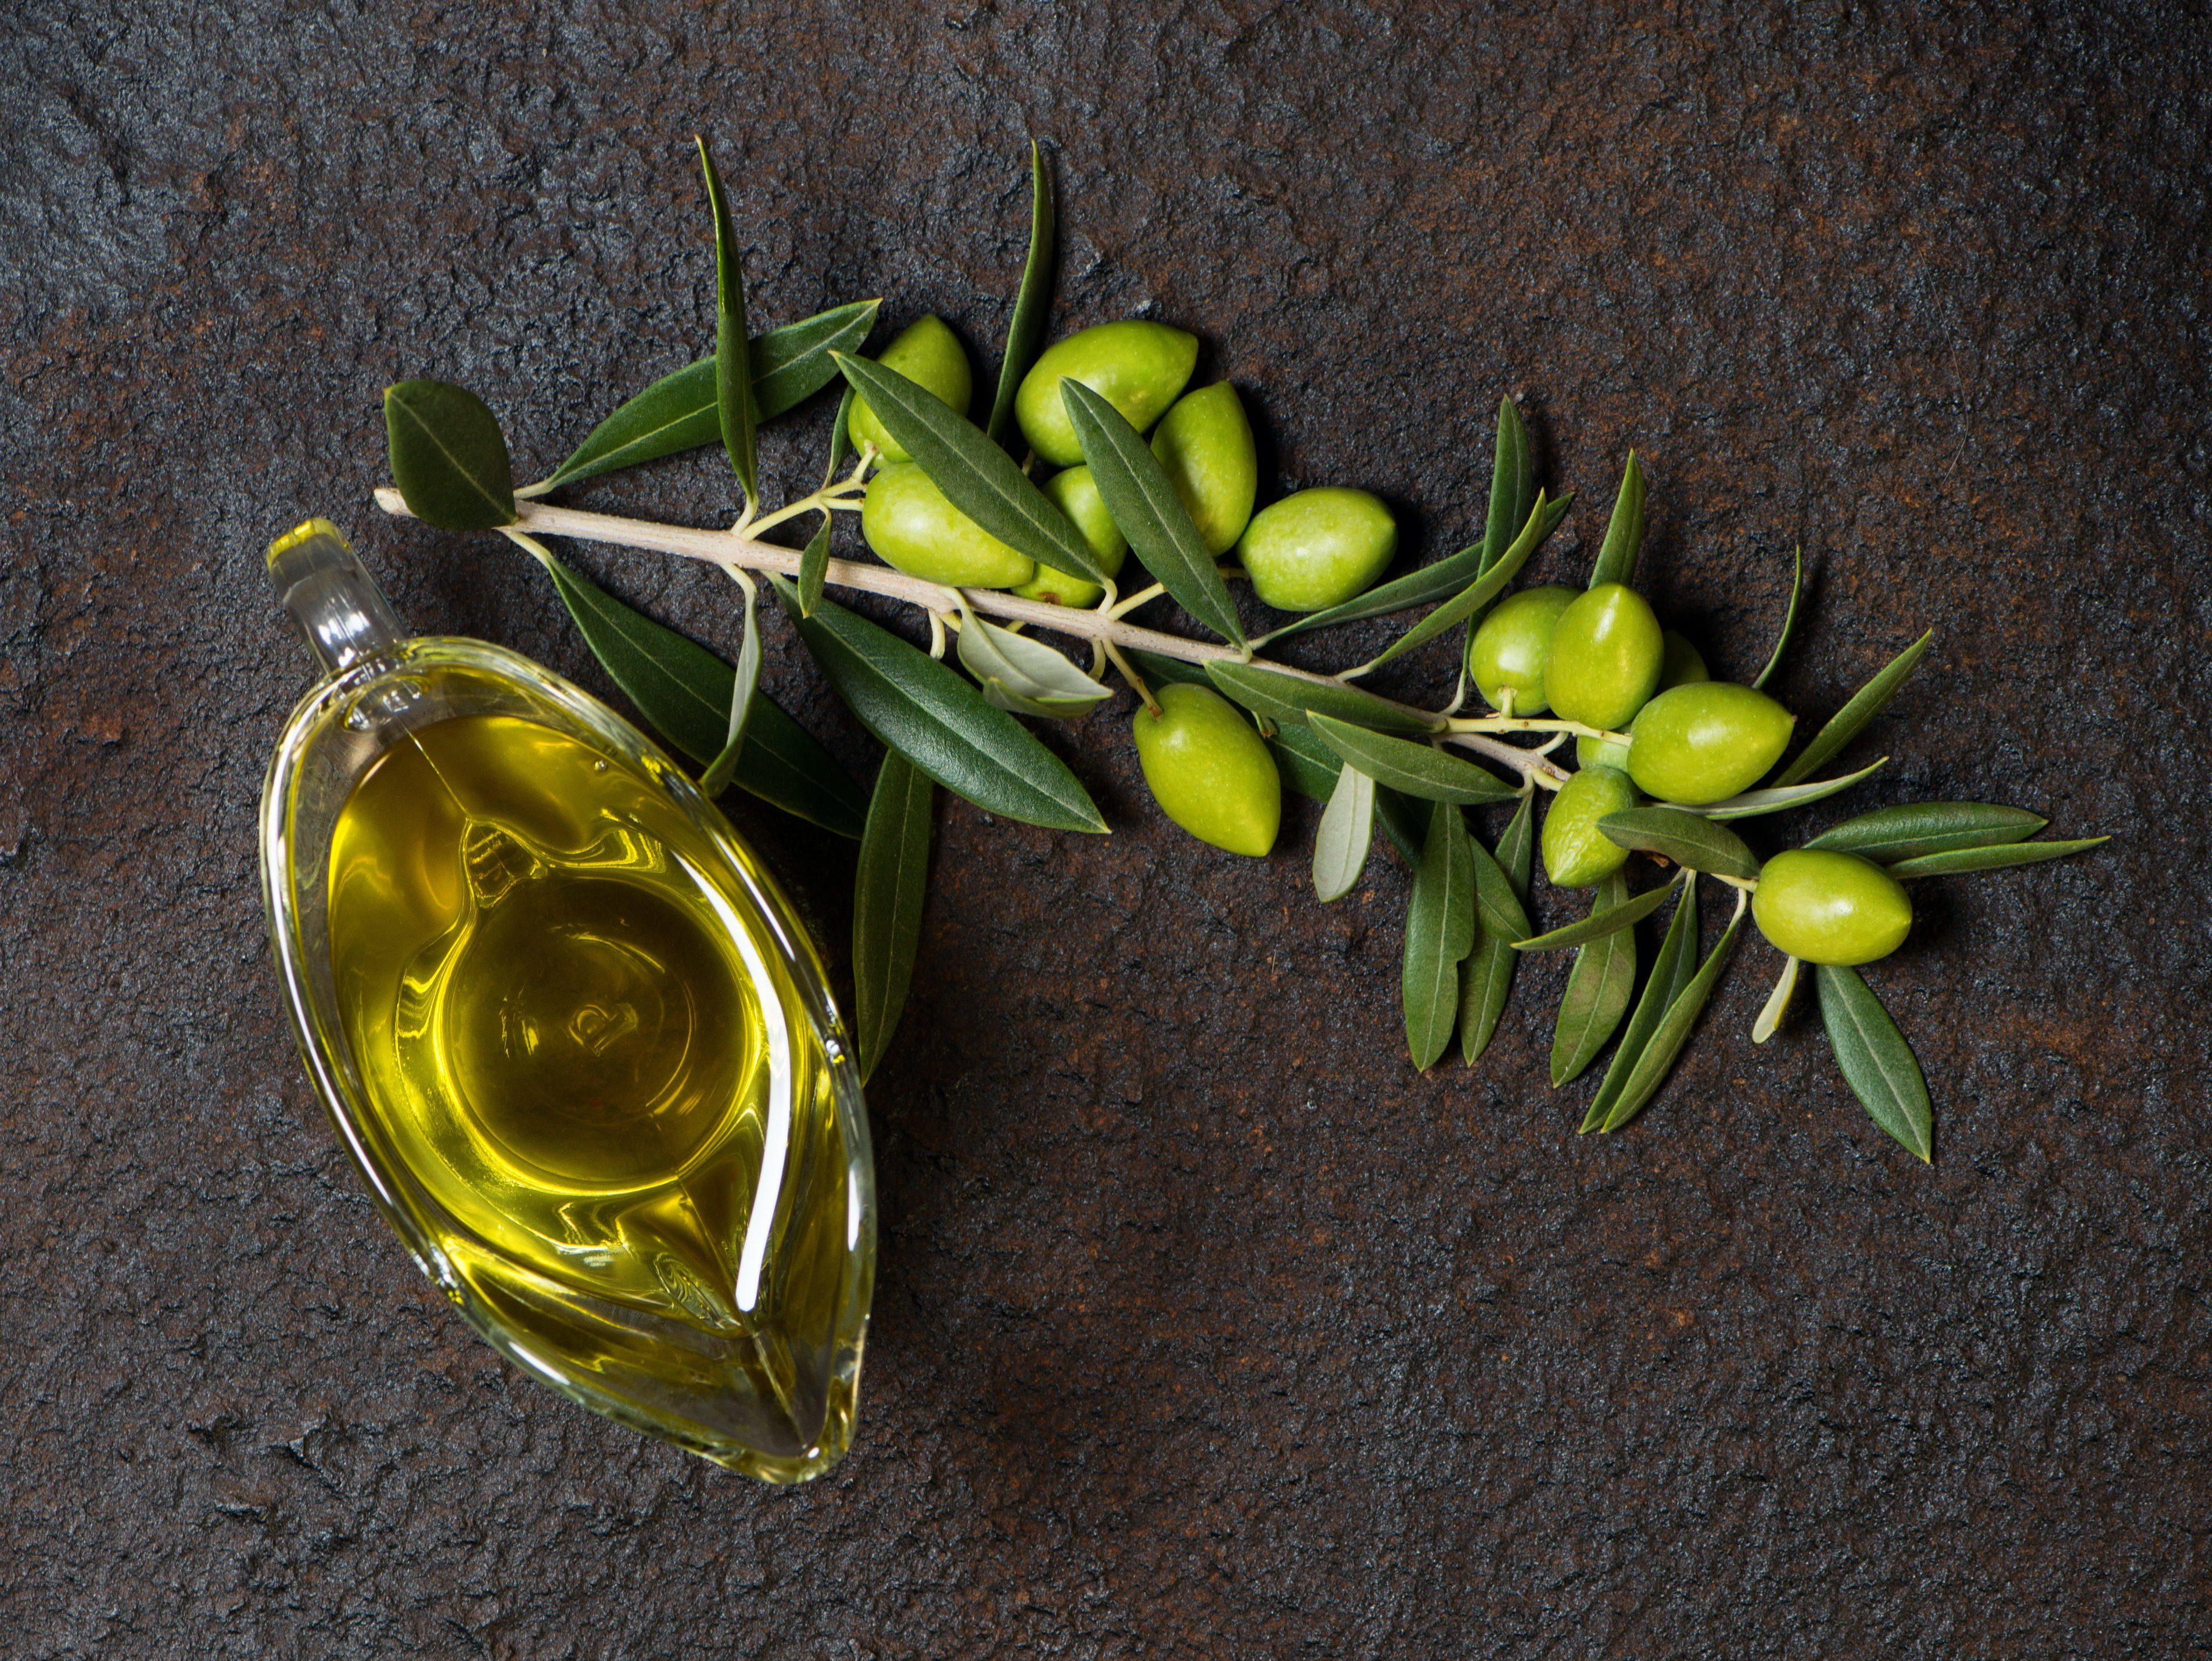 Top view of branch with green olives and glass sauceboat of olive oil on a black grunge metal background.